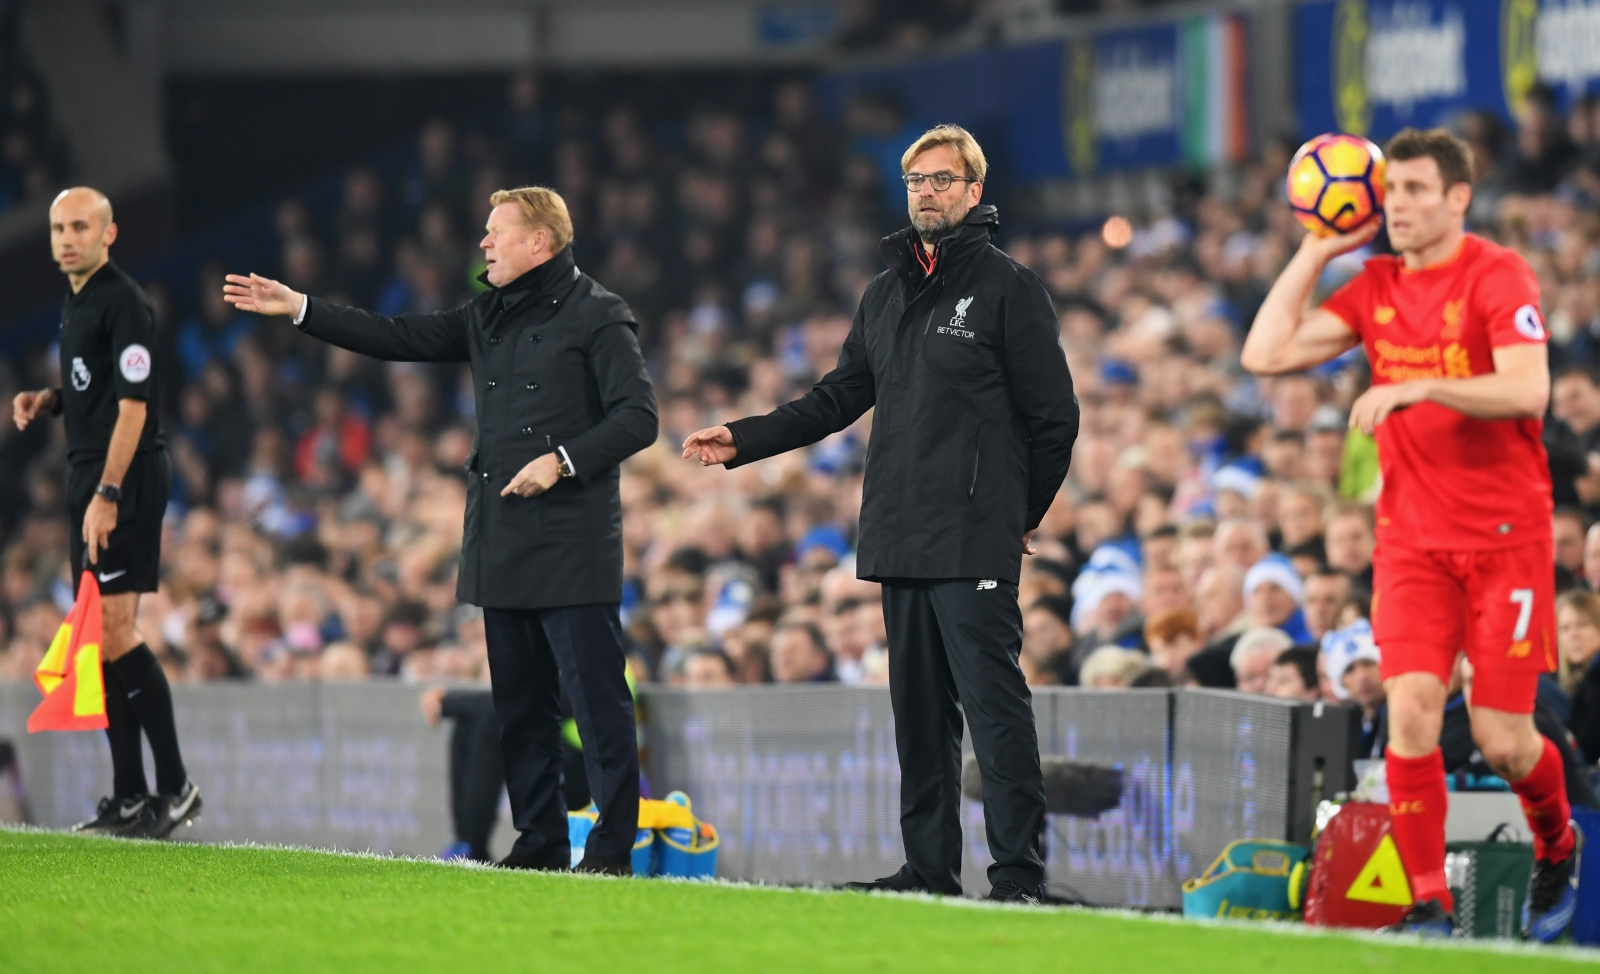 Ronald Koeman and Jurgen Klopp